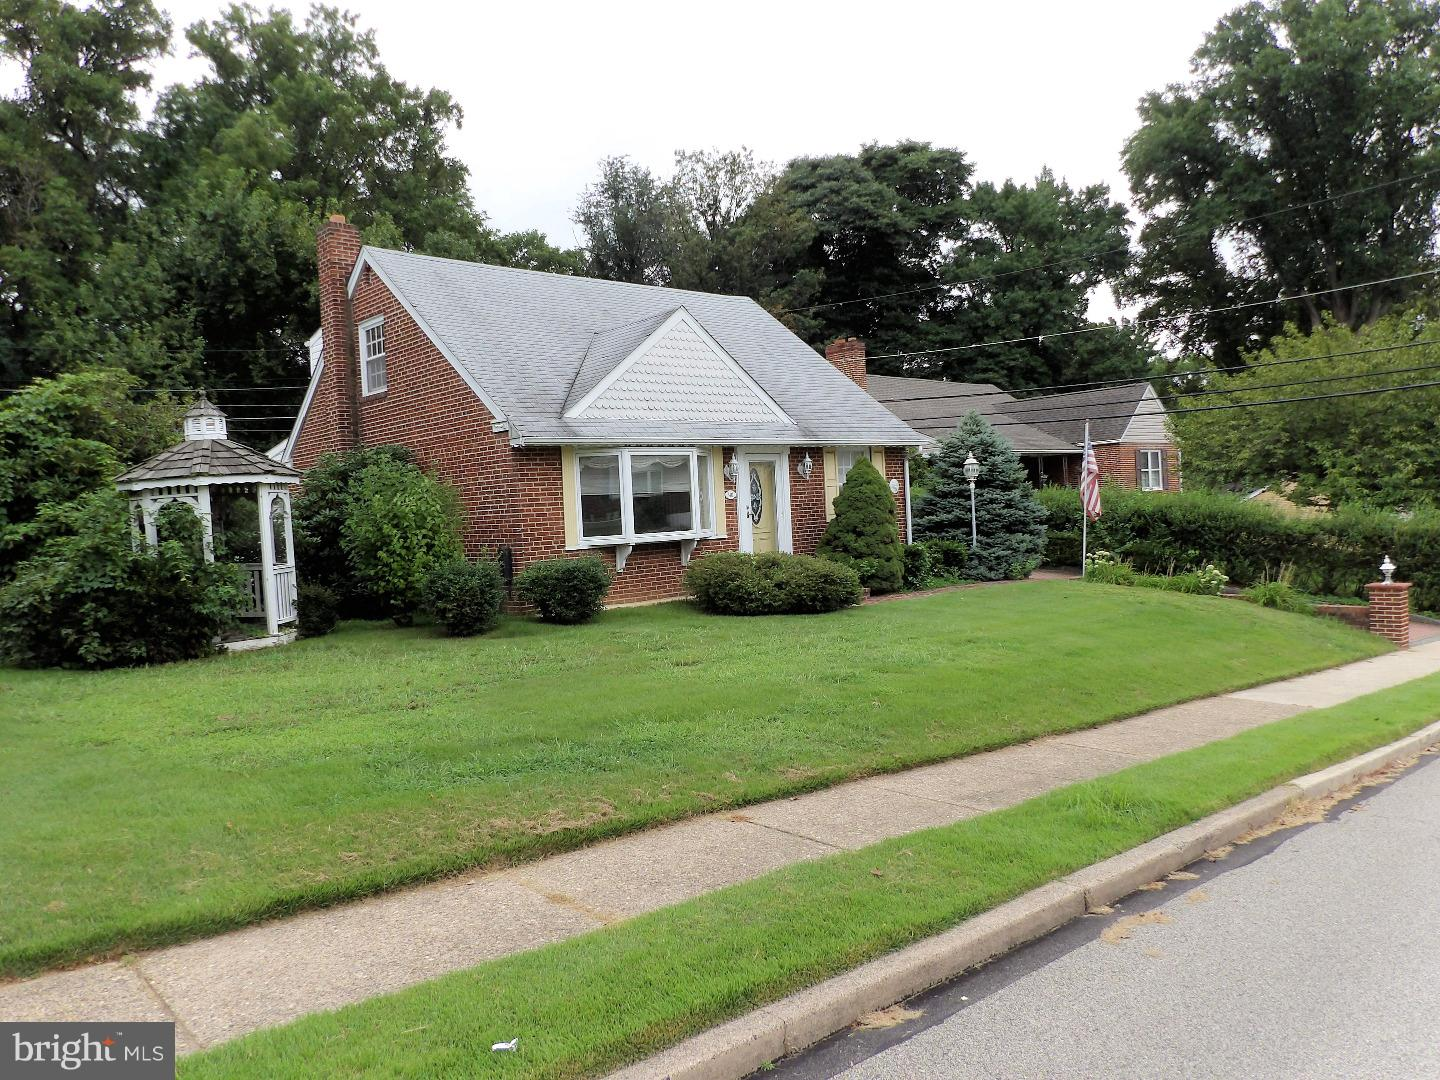 401 PERRY STREET, RIDLEY PARK, PA 19078